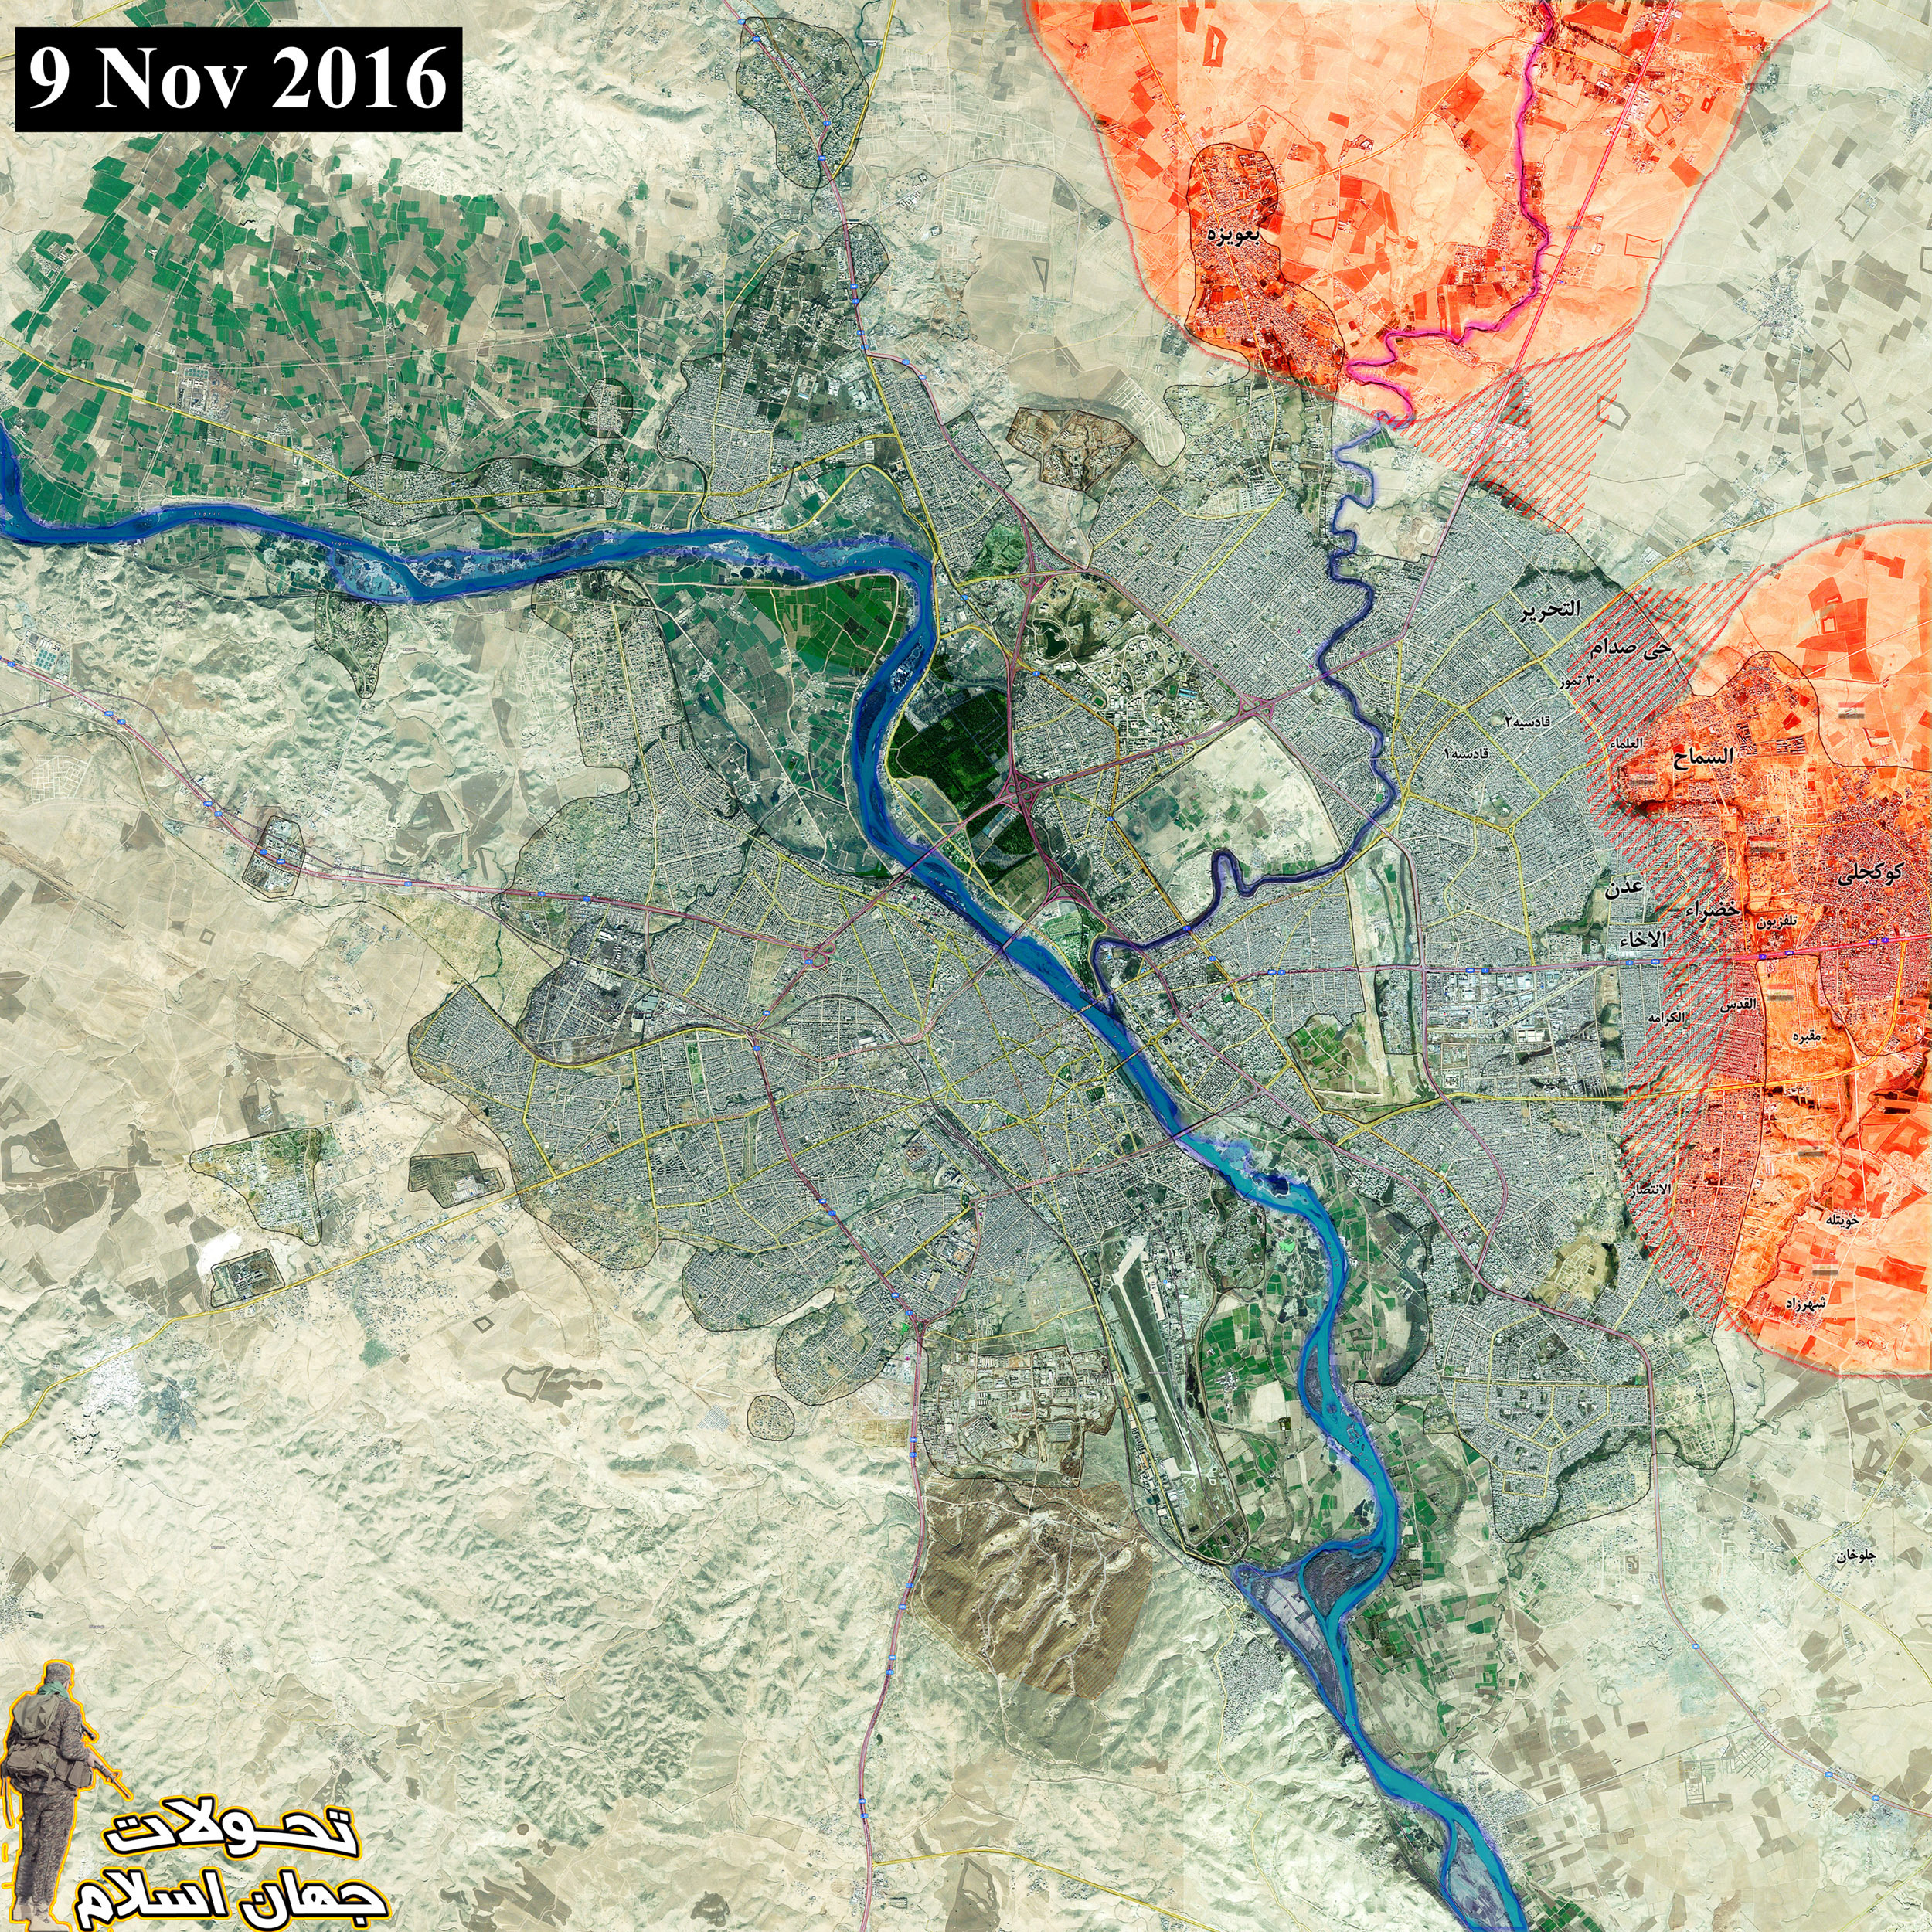 Battle for Mosul on November 10, 2016